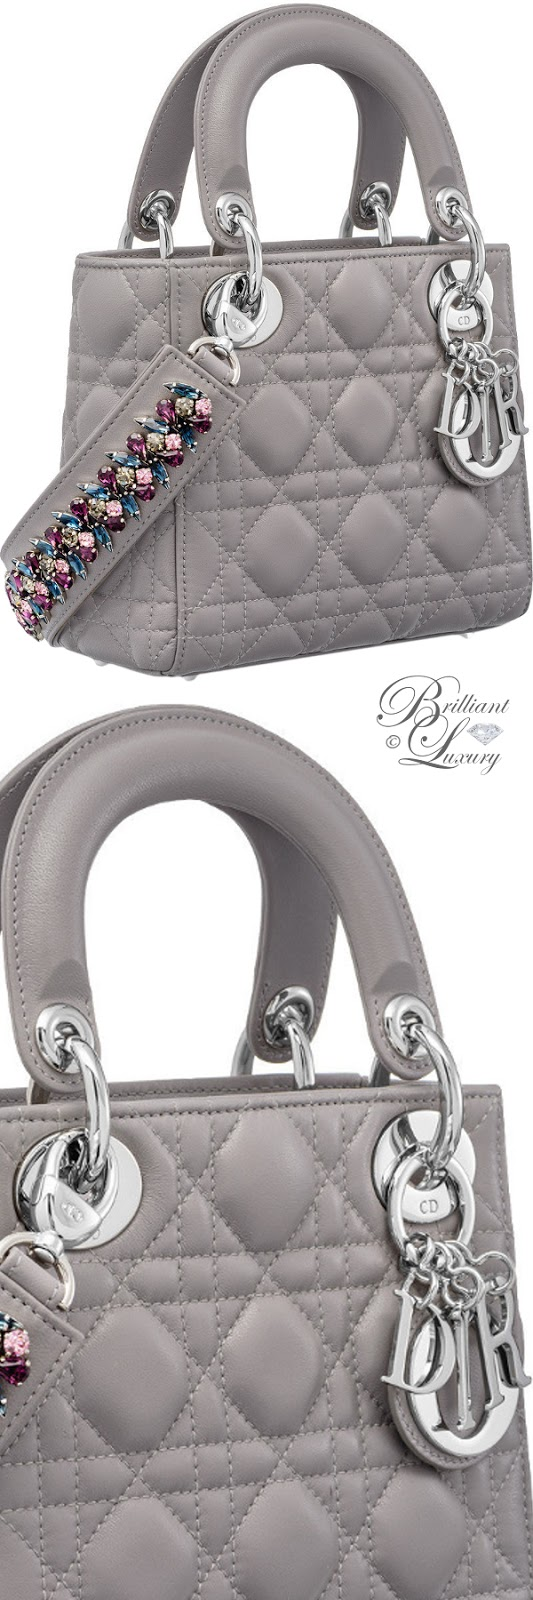 Brilliant Luxury ♦ Mini Lady Dior bag with cannage topstitching in Montaigne Grey lambskin